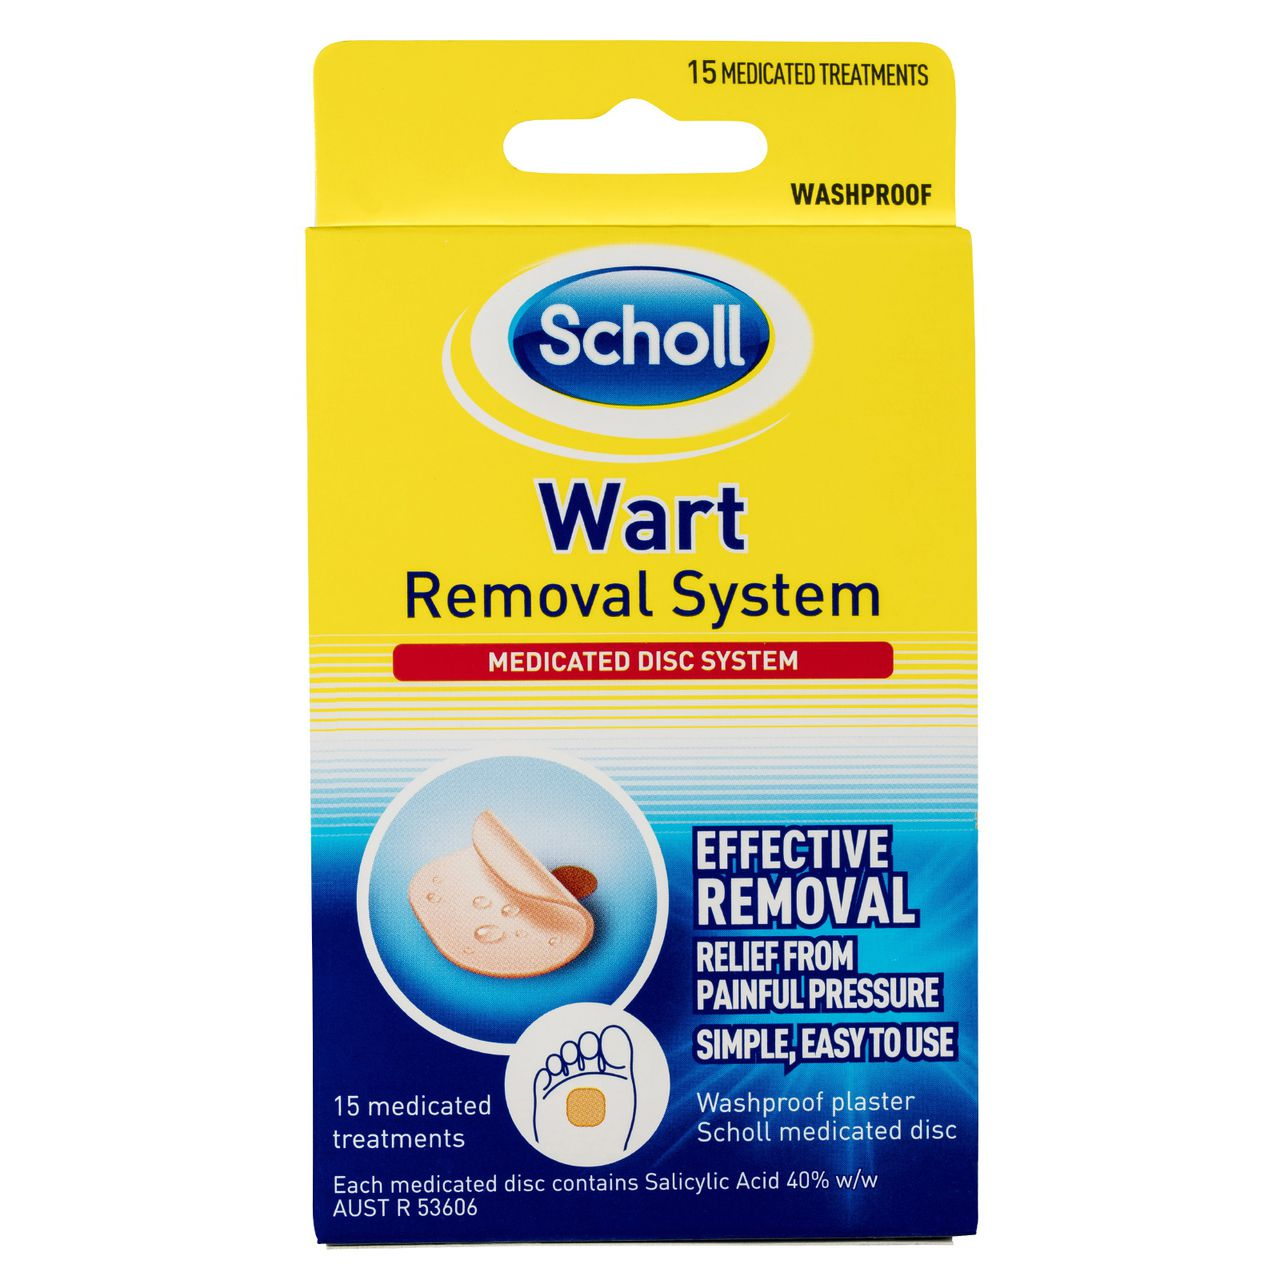 Wart treatment scholl, Wart treatment kit, Wart treatment kit - fotobiennale.ro